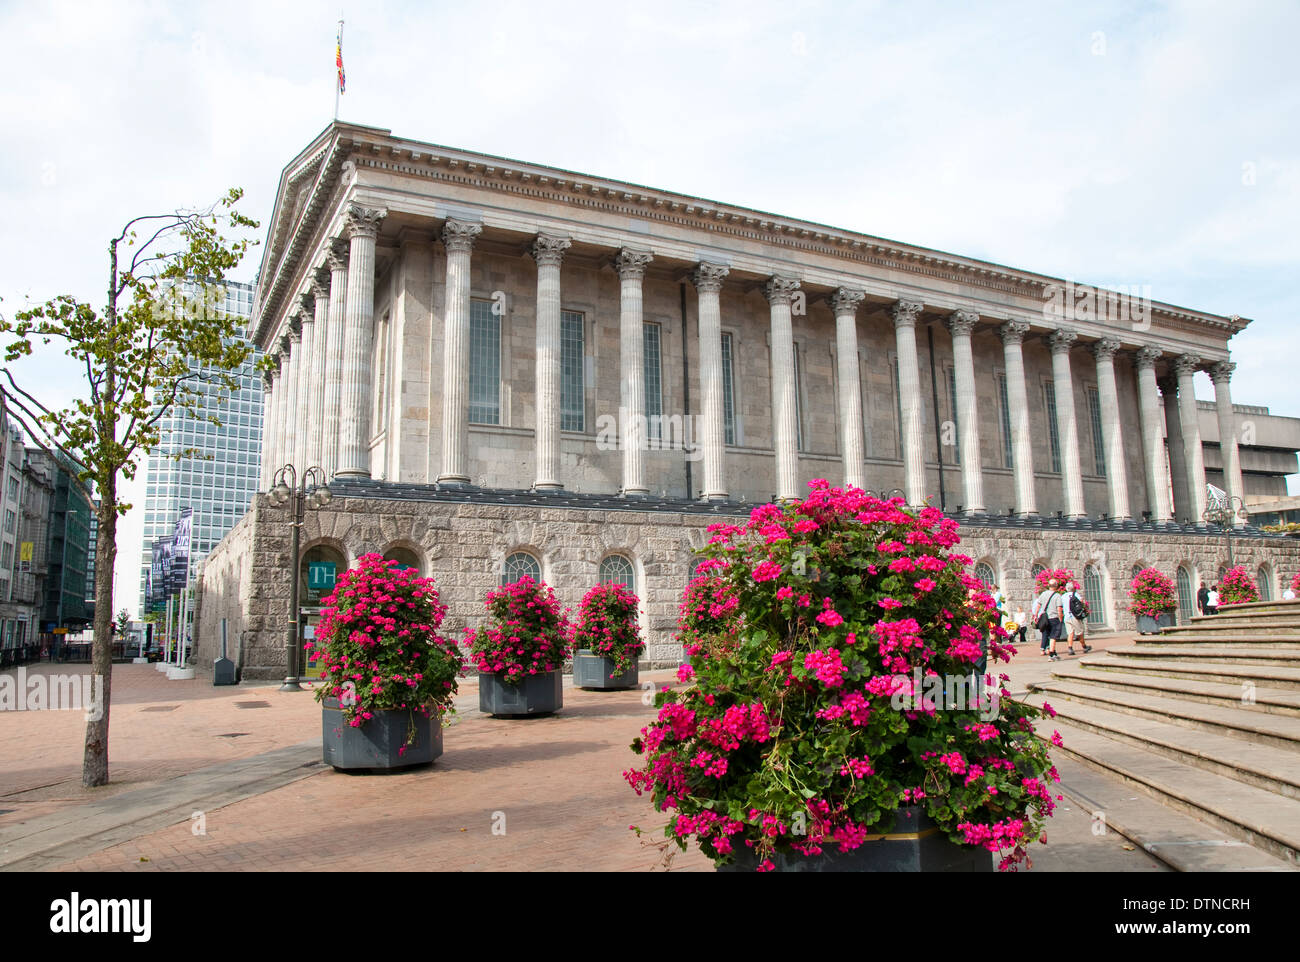 The Town Hall in Victoria Square Birmingham, West Midlands England UK - Stock Image